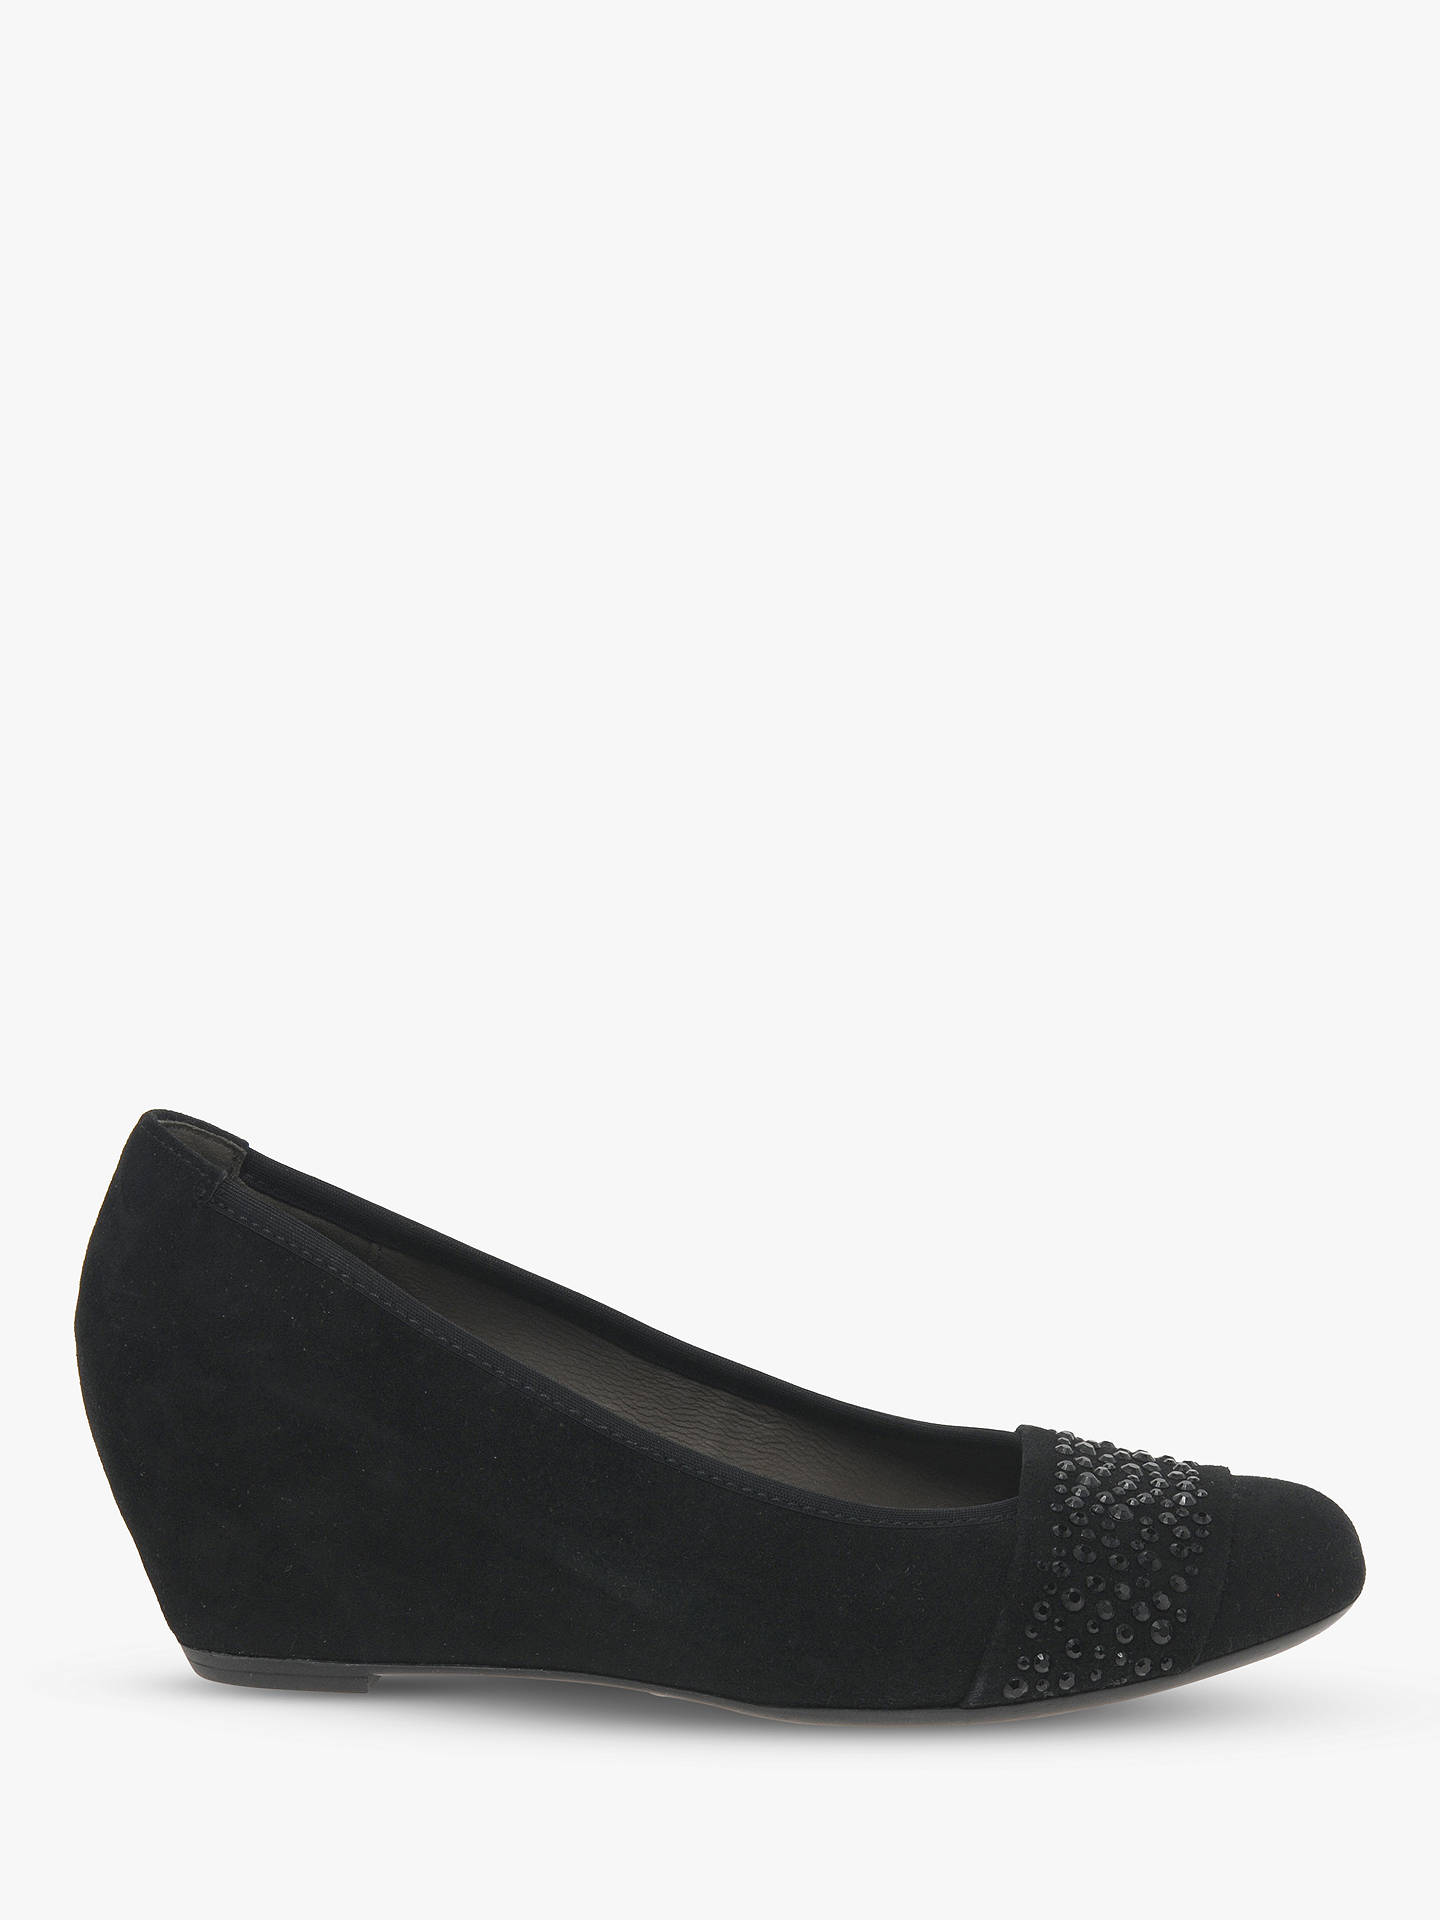 0eecee0bf03a6 Buy Gabor Fodder Concealed Wedge Heel Court Shoes, Black Suede, 6 Online at  johnlewis ...